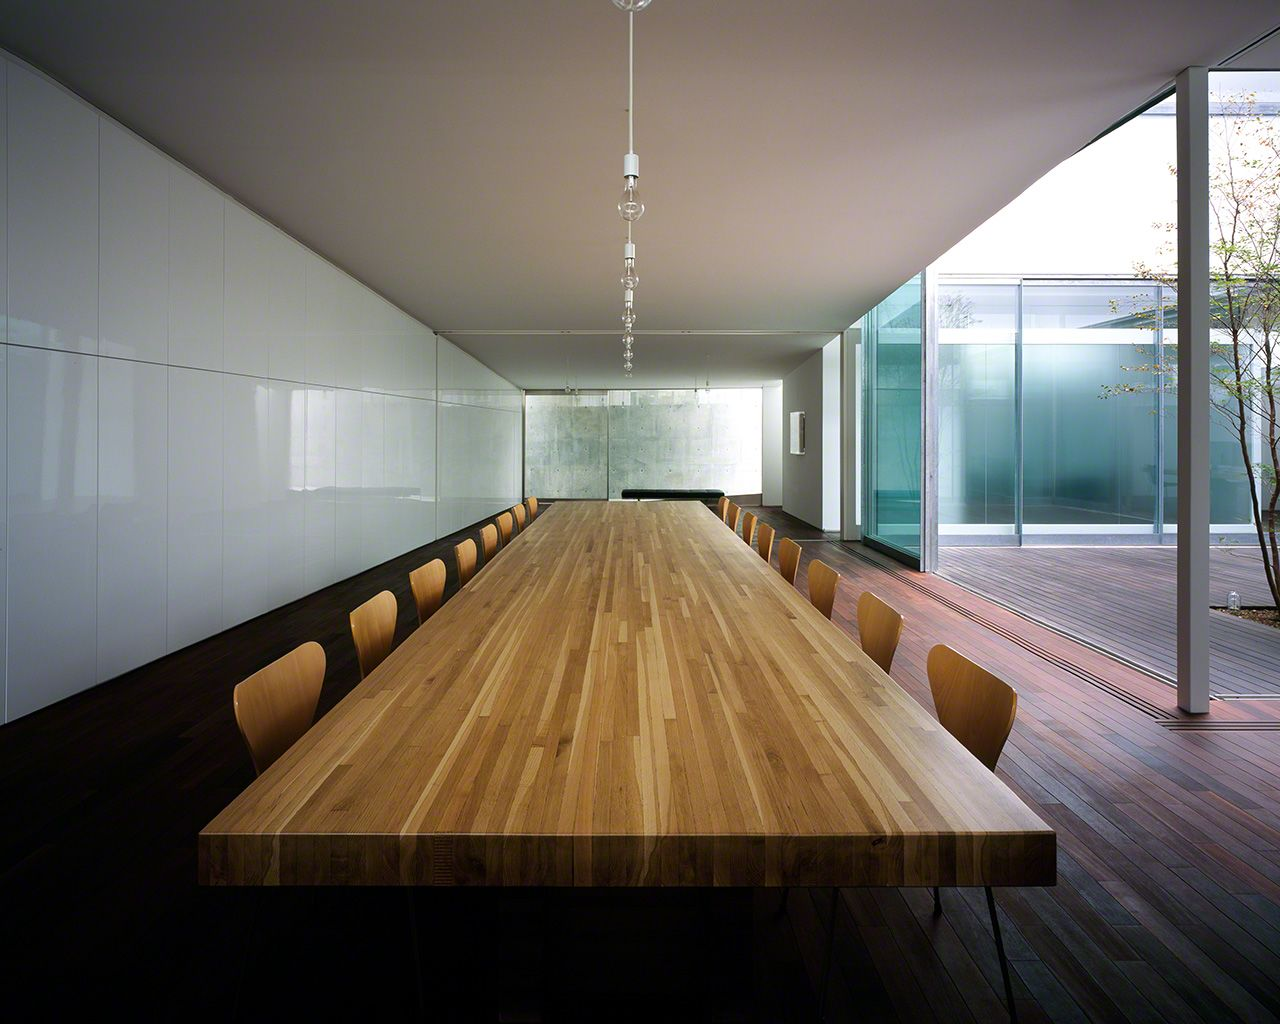 Conference room in Satō Kashiwa's studio, Samurai, in Tokyo's Shibuya district.